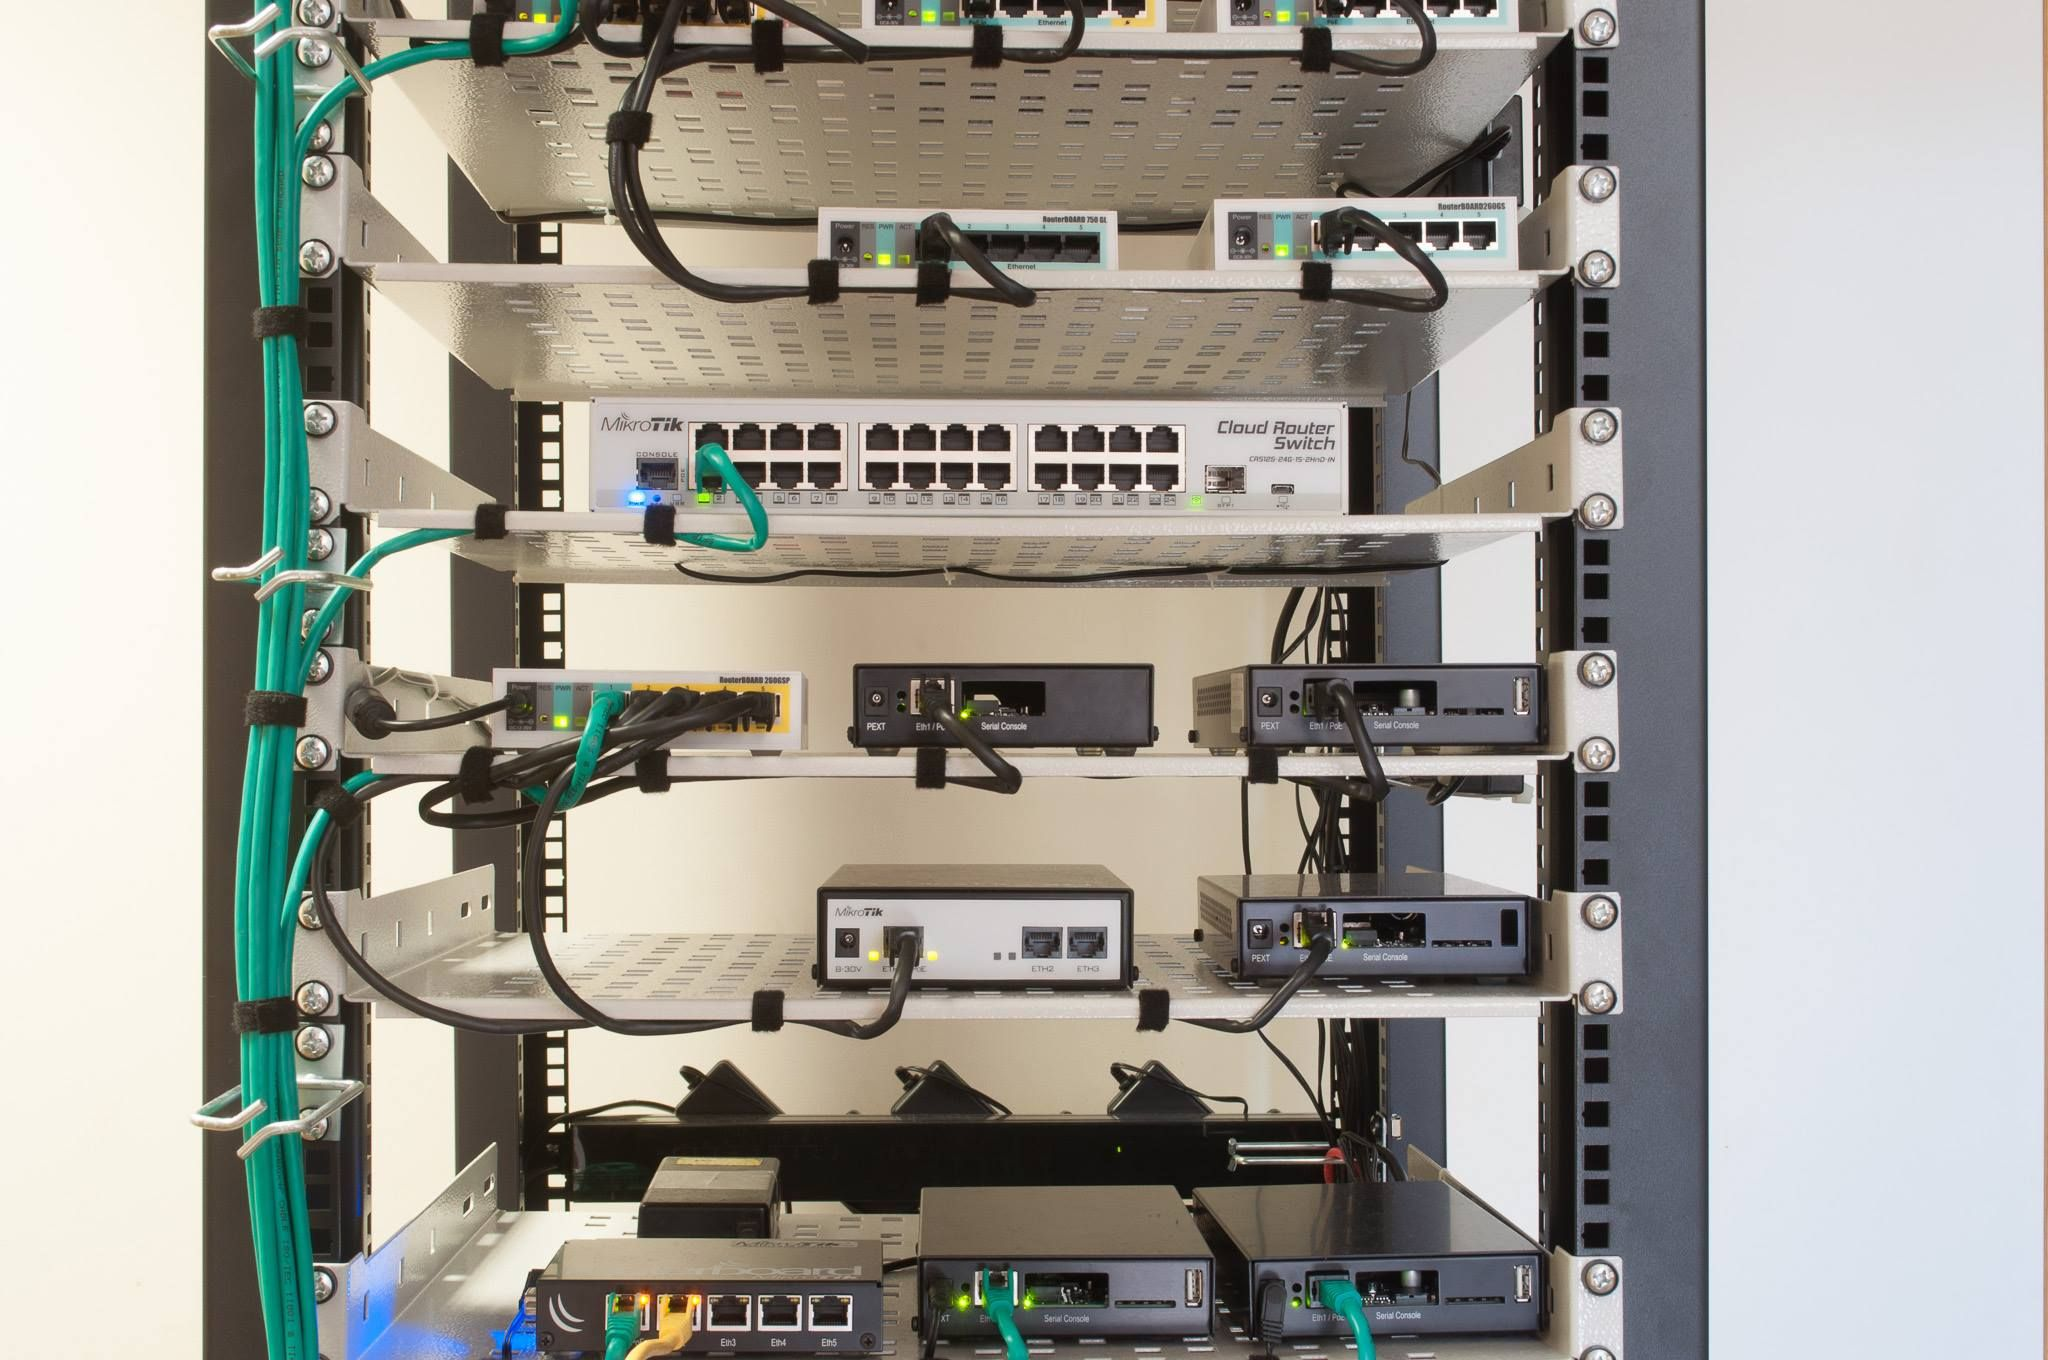 Panel Home Network Wiring Ent Schematic Diagrams Theater Mikrotik Racks And Pinterest